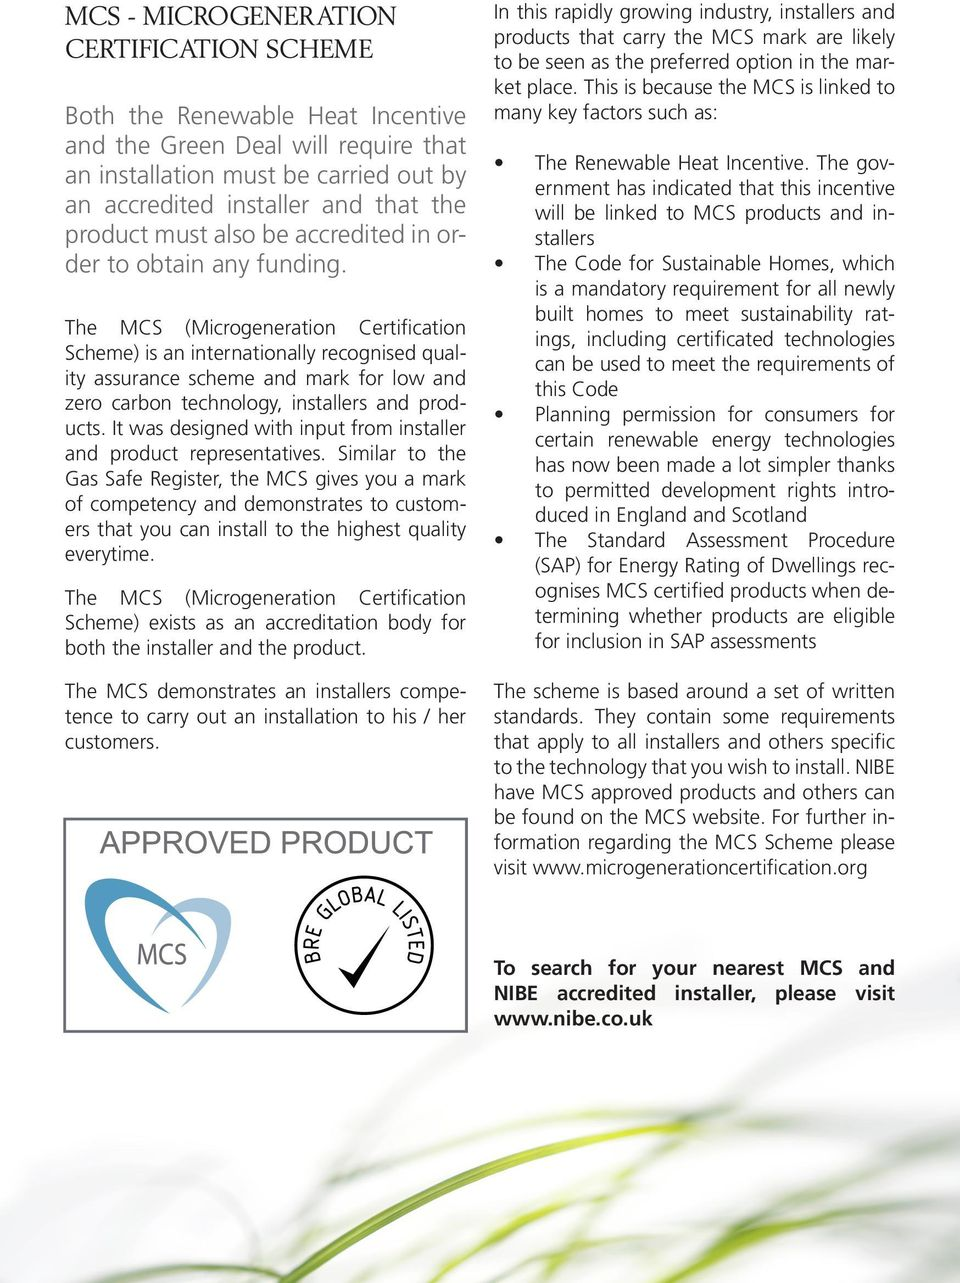 The MCS (Microgeneration Certification Scheme) is an internationally recognised quality assurance scheme and mark for low and zero carbon technology, installers and products.